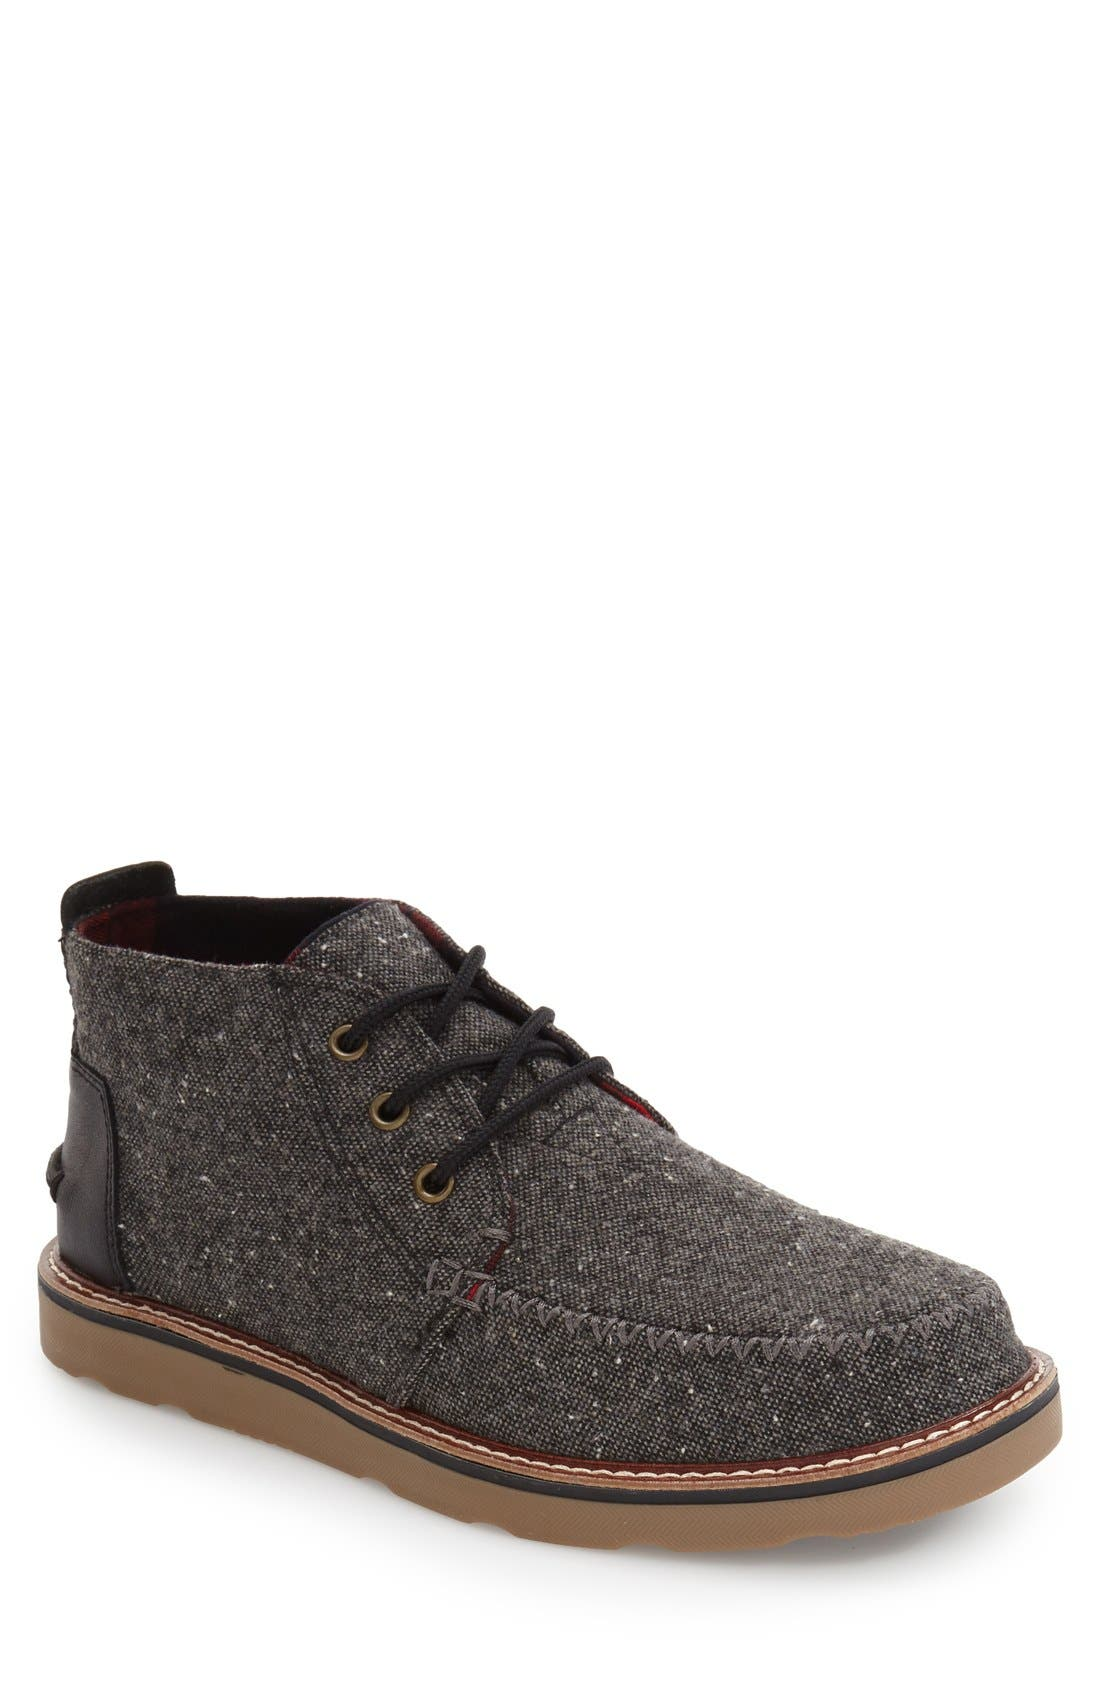 Chukka Boot,                             Main thumbnail 1, color,                             020